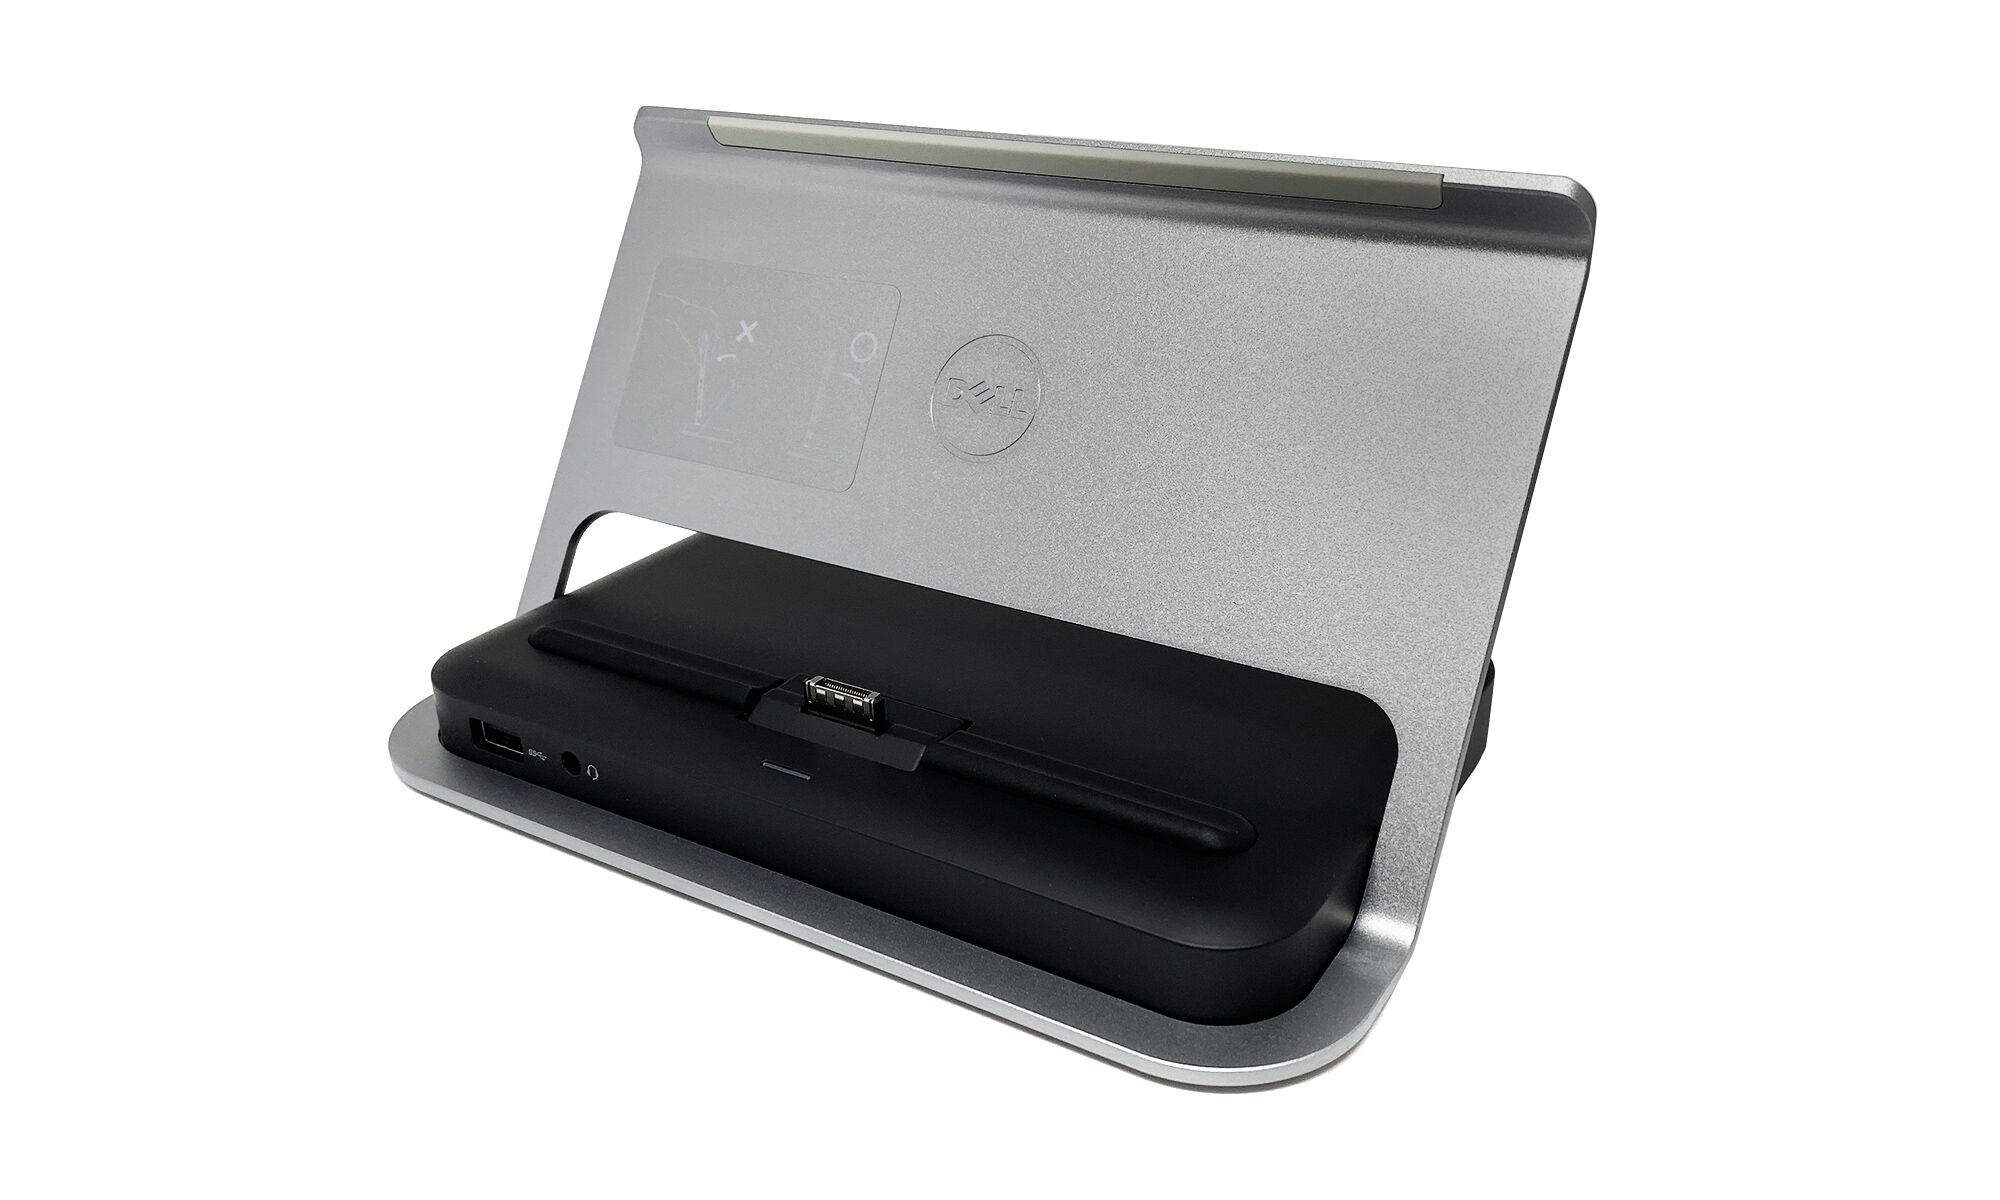 Docking Station Dell K10A pentru Venue 11 Pro 5130, 7130, 7139, 7140, Latitude 13 7350 2-in-1